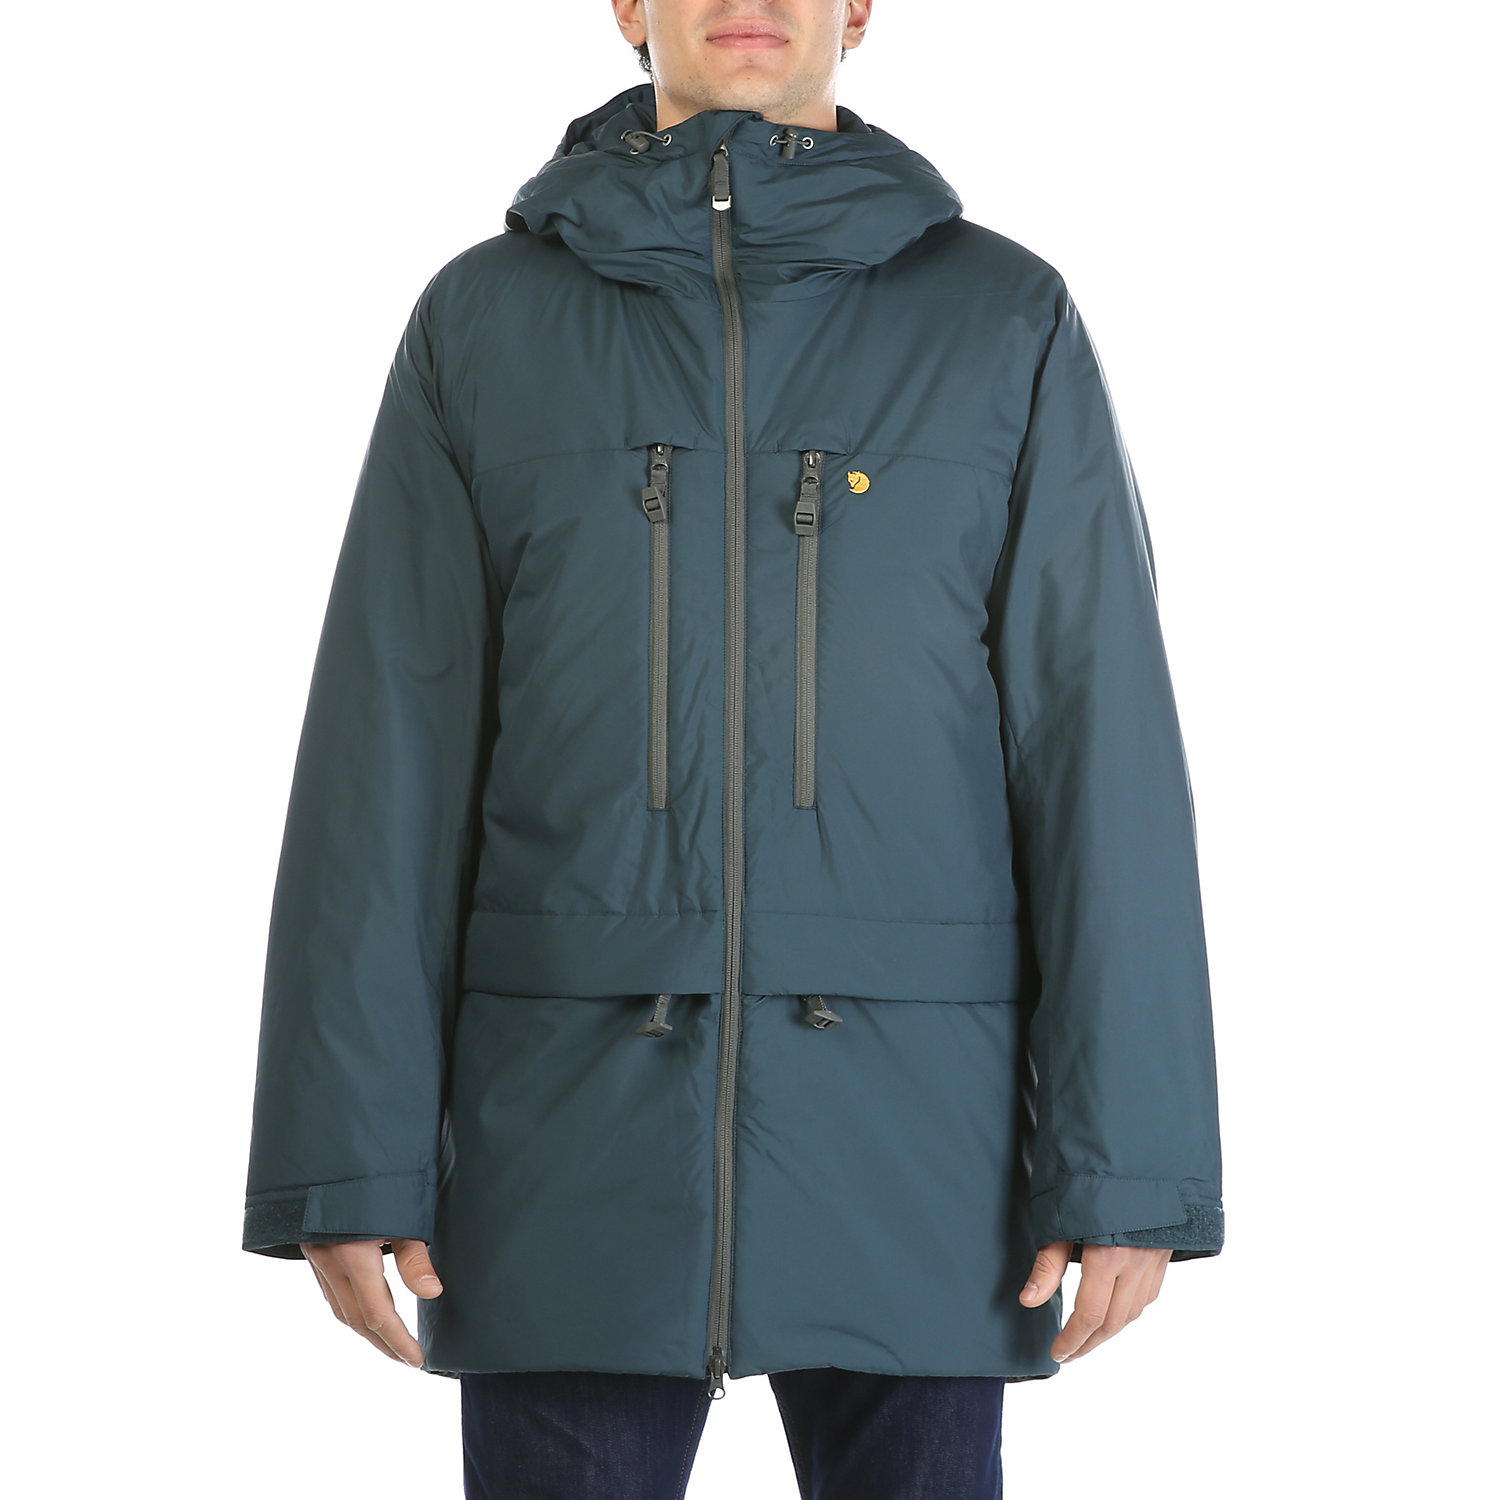 half off 1830c 3e6e4 Fjallraven Men's Bergtagen Insulation Parka